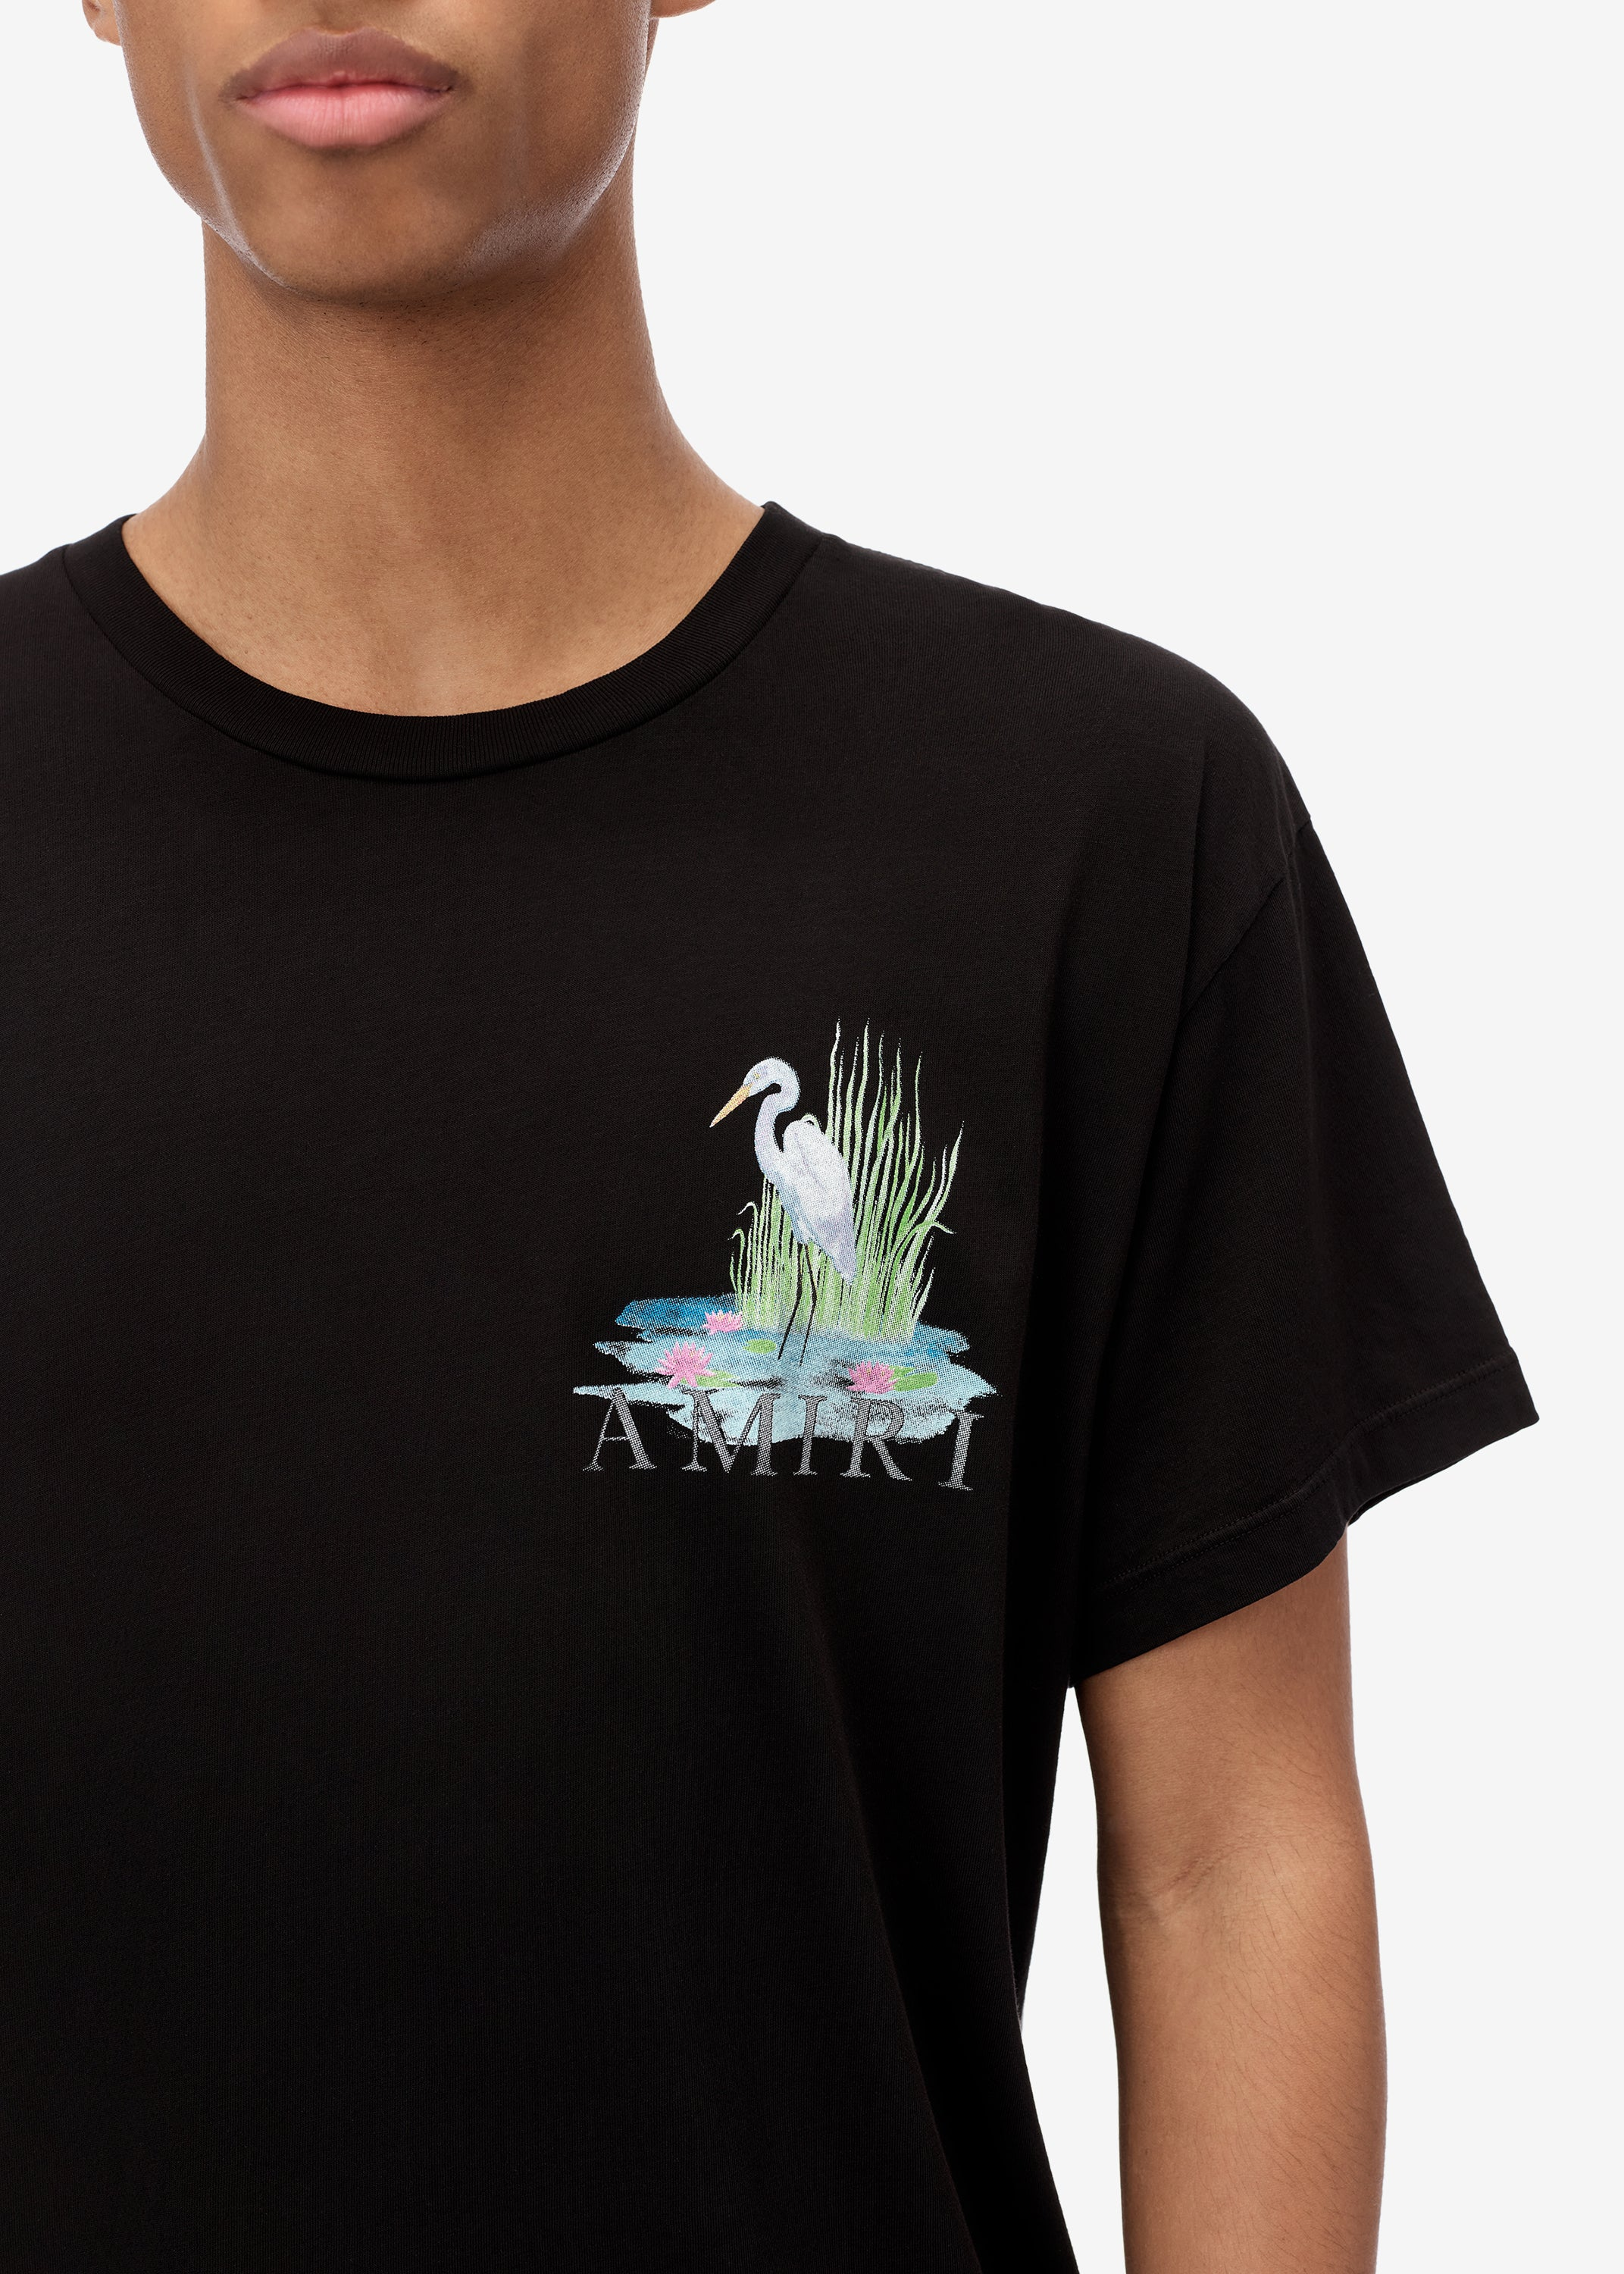 standing-egret-tee-web-exclusive-black-image-2